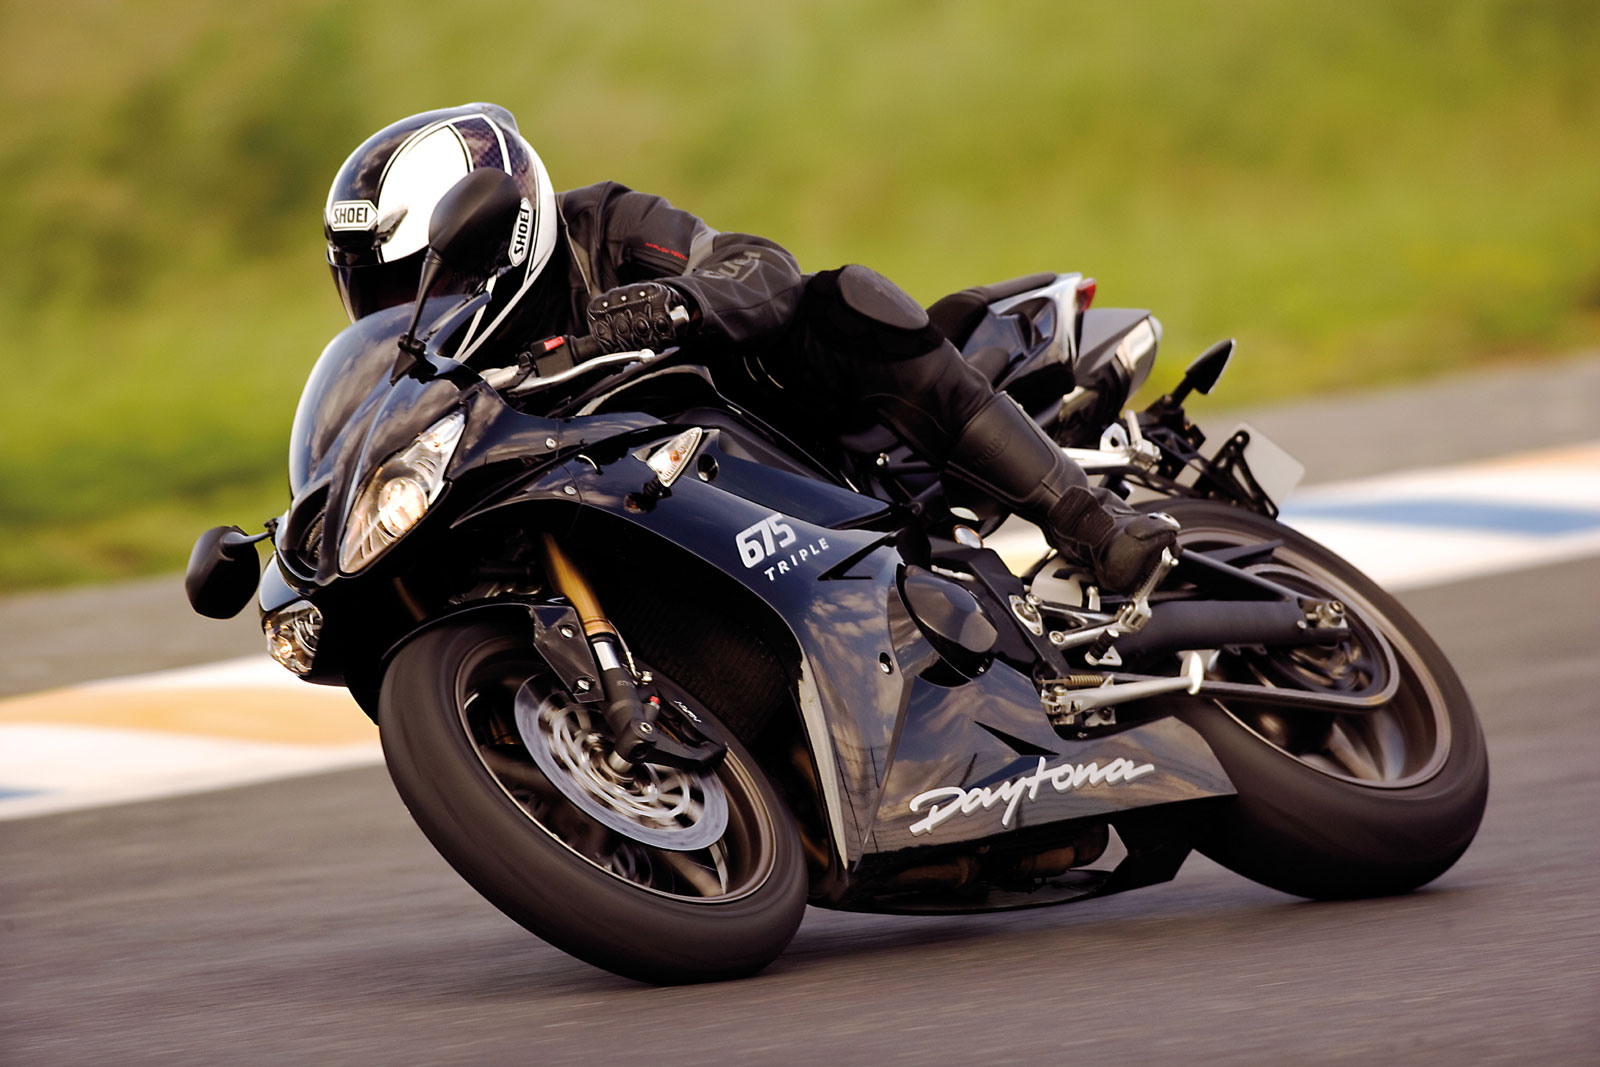 2009 Triumph Daytona 675 Best Action